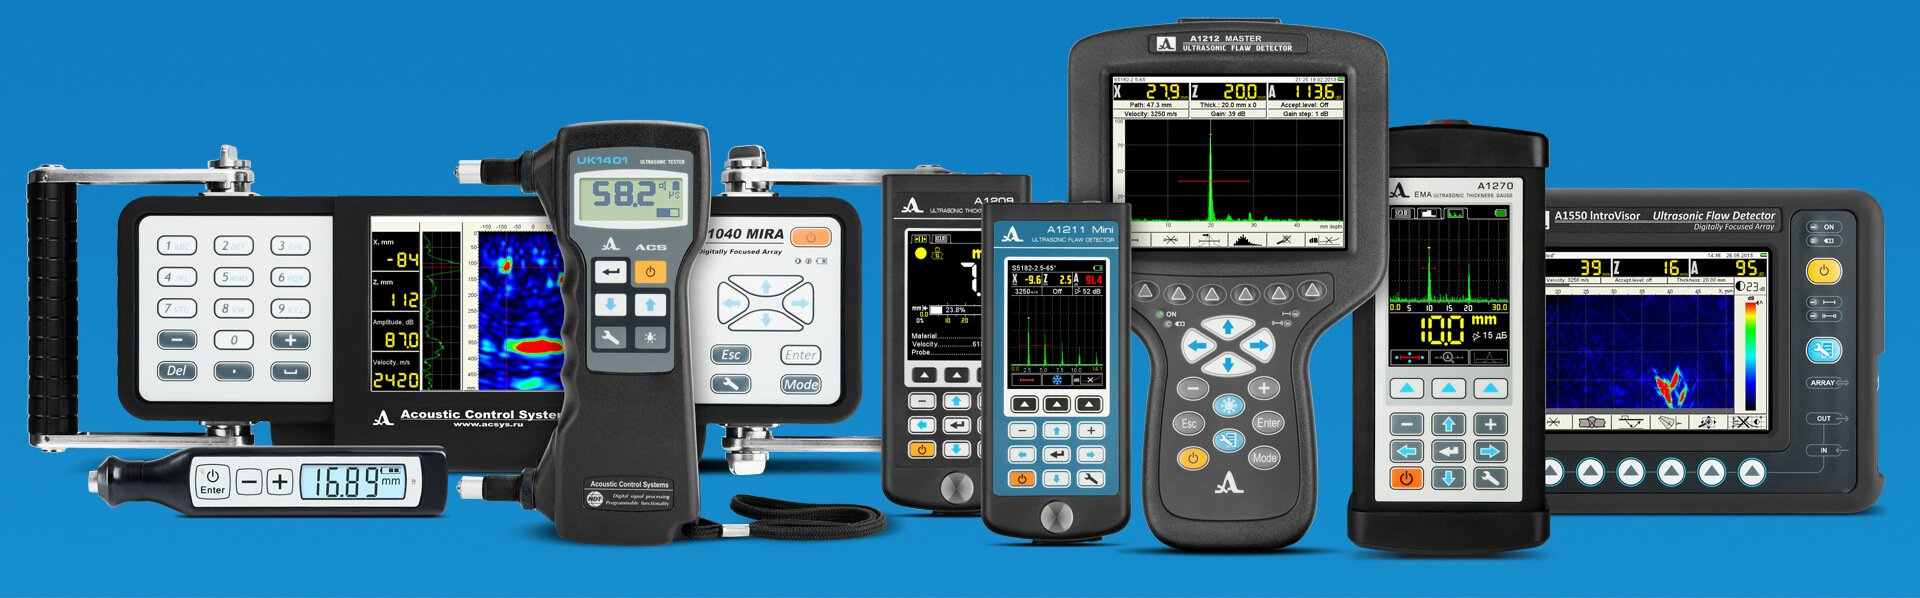 Ultrasonic testing instruments for metal, concrete and composite material testing